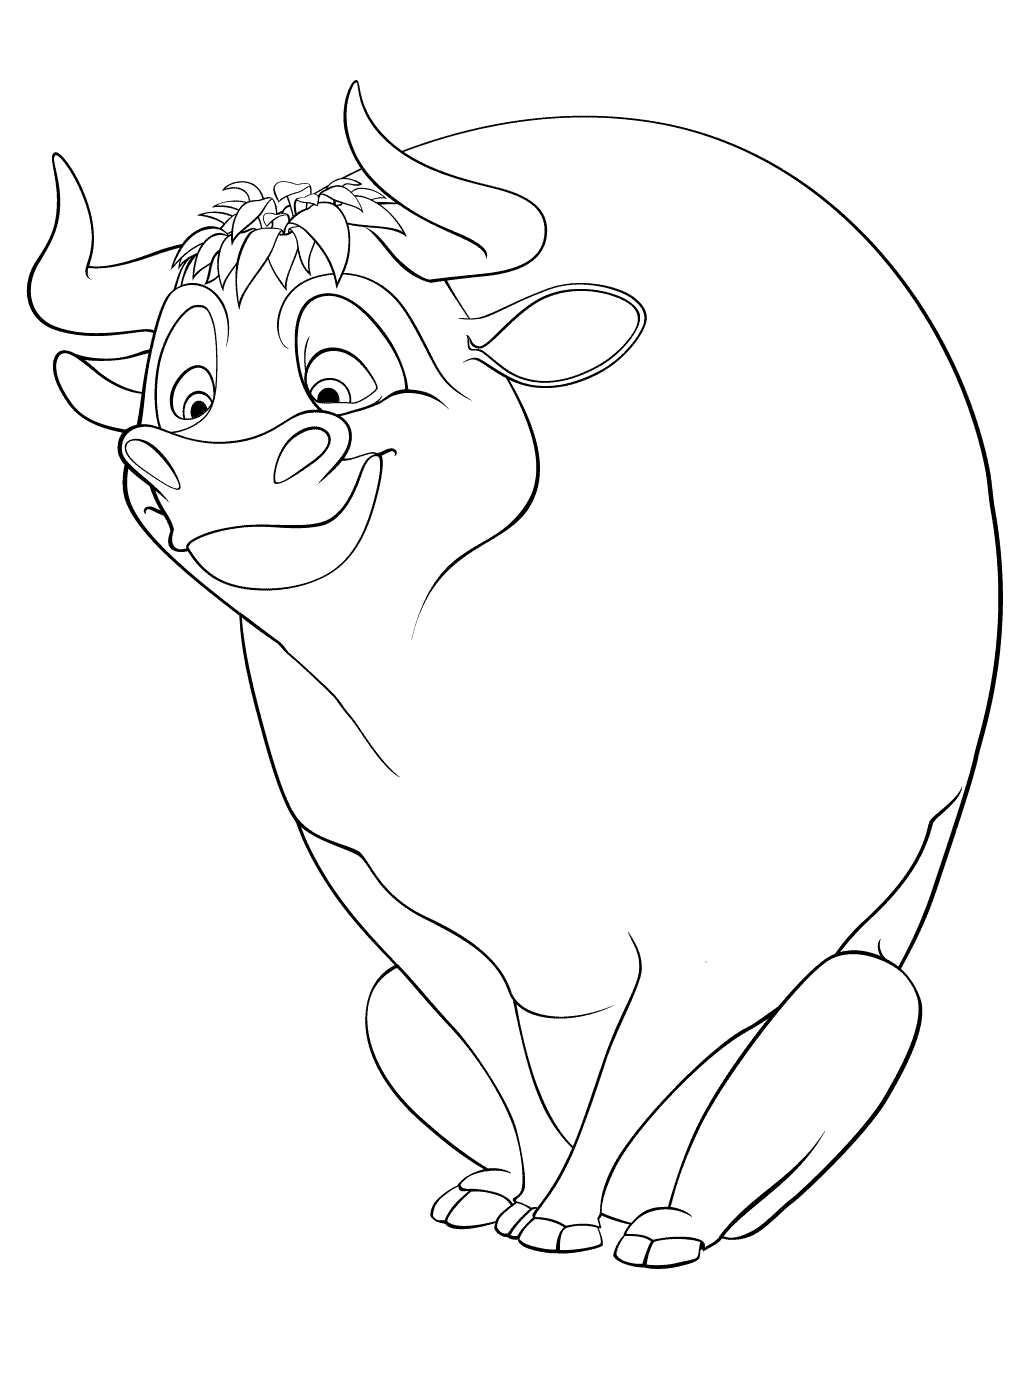 ferdinand coloring pages Free Printable Ferdinand Coloring Pages | Birthday Party  ferdinand coloring pages